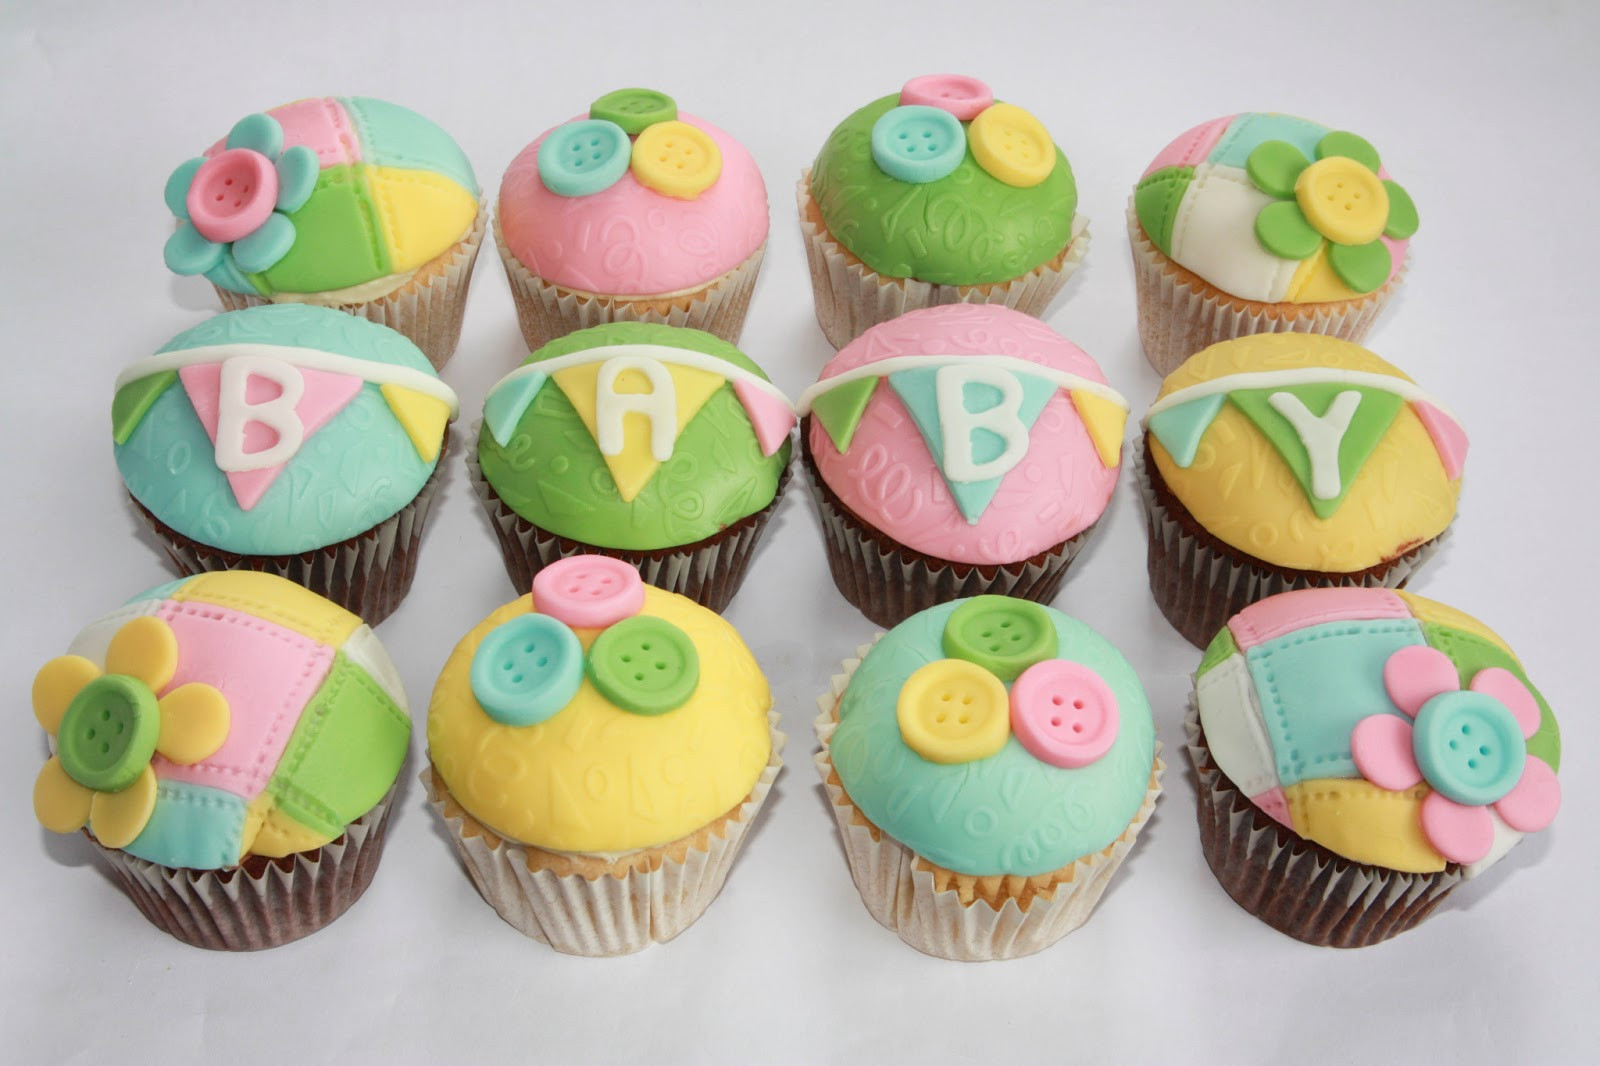 Baby Shower Cupcakes  The Cake Trail Baby Shower Cupcakes